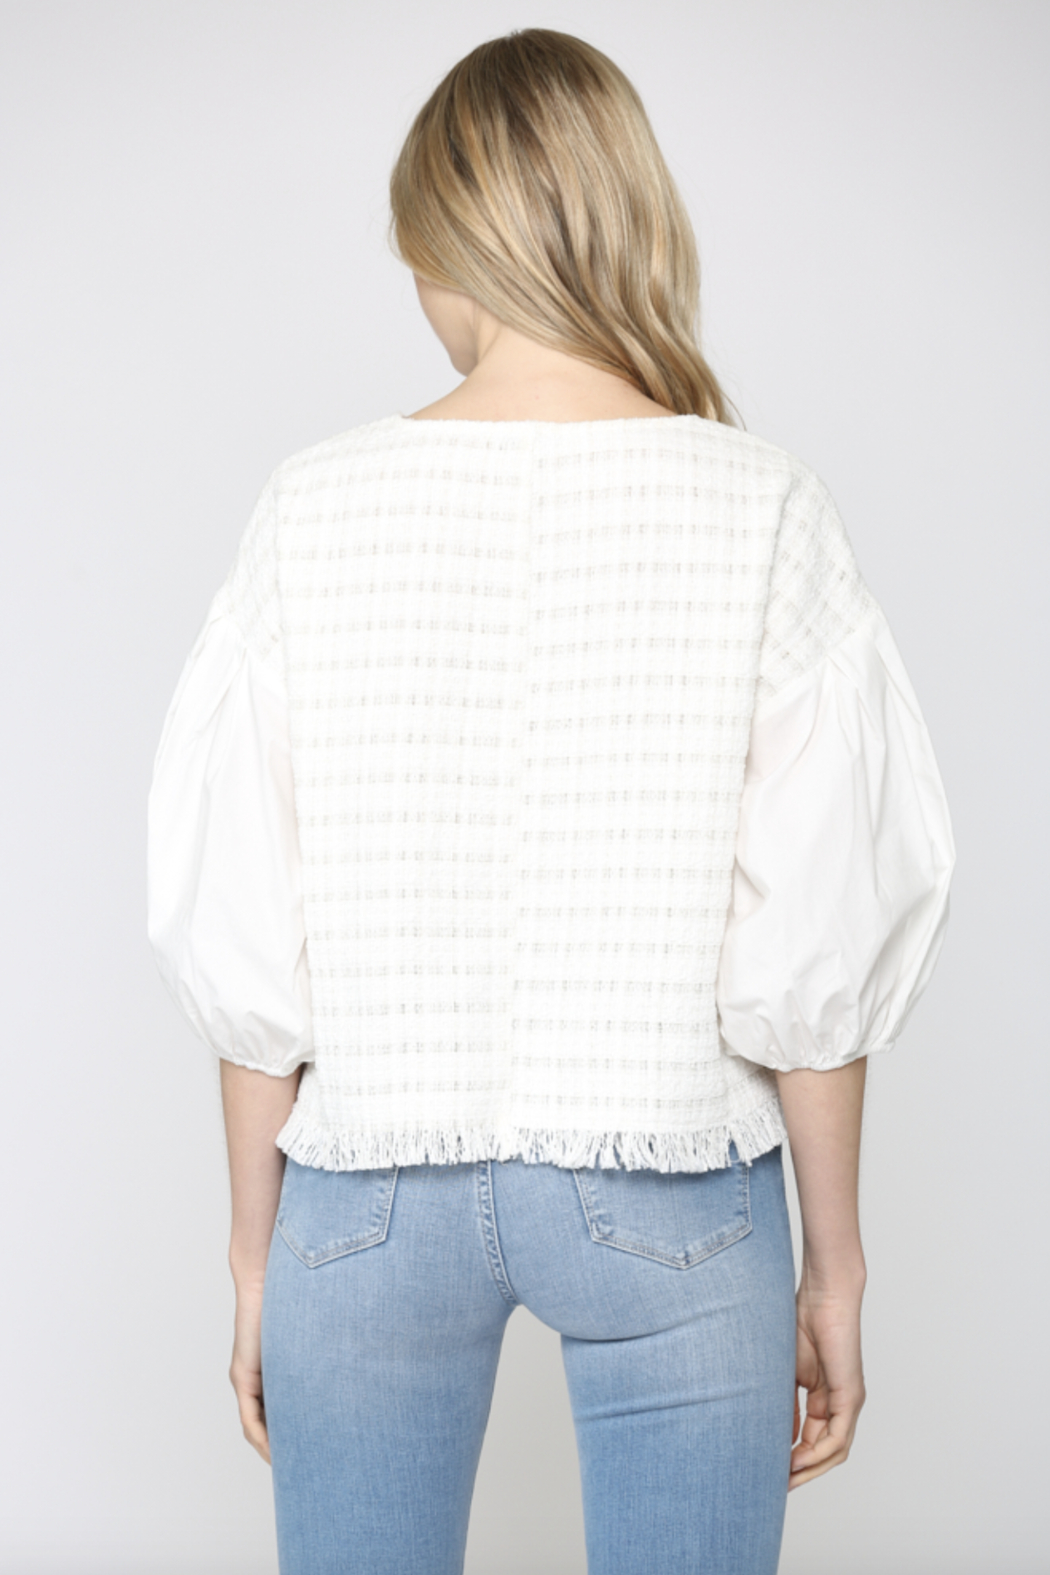 FATE by LFD Contrast Balloon Sleeve Tweed Blouse - Side Cropped Image